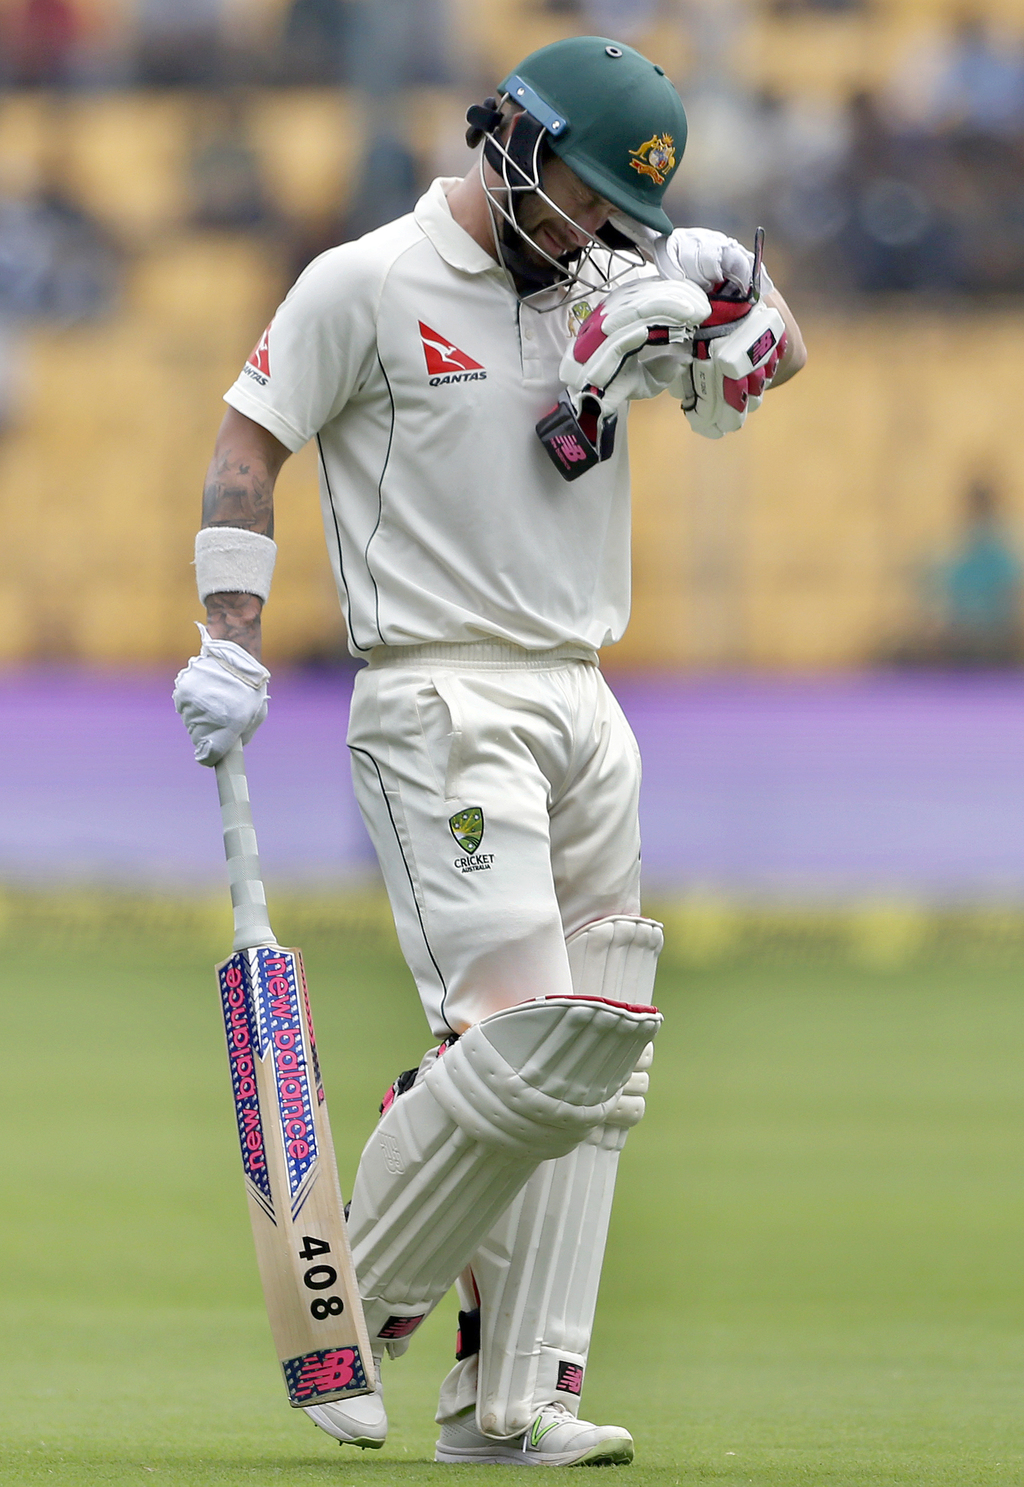 Australia's Matthew Wade leaves the field after being dismissed during the third day of their second test cricket match against India i...